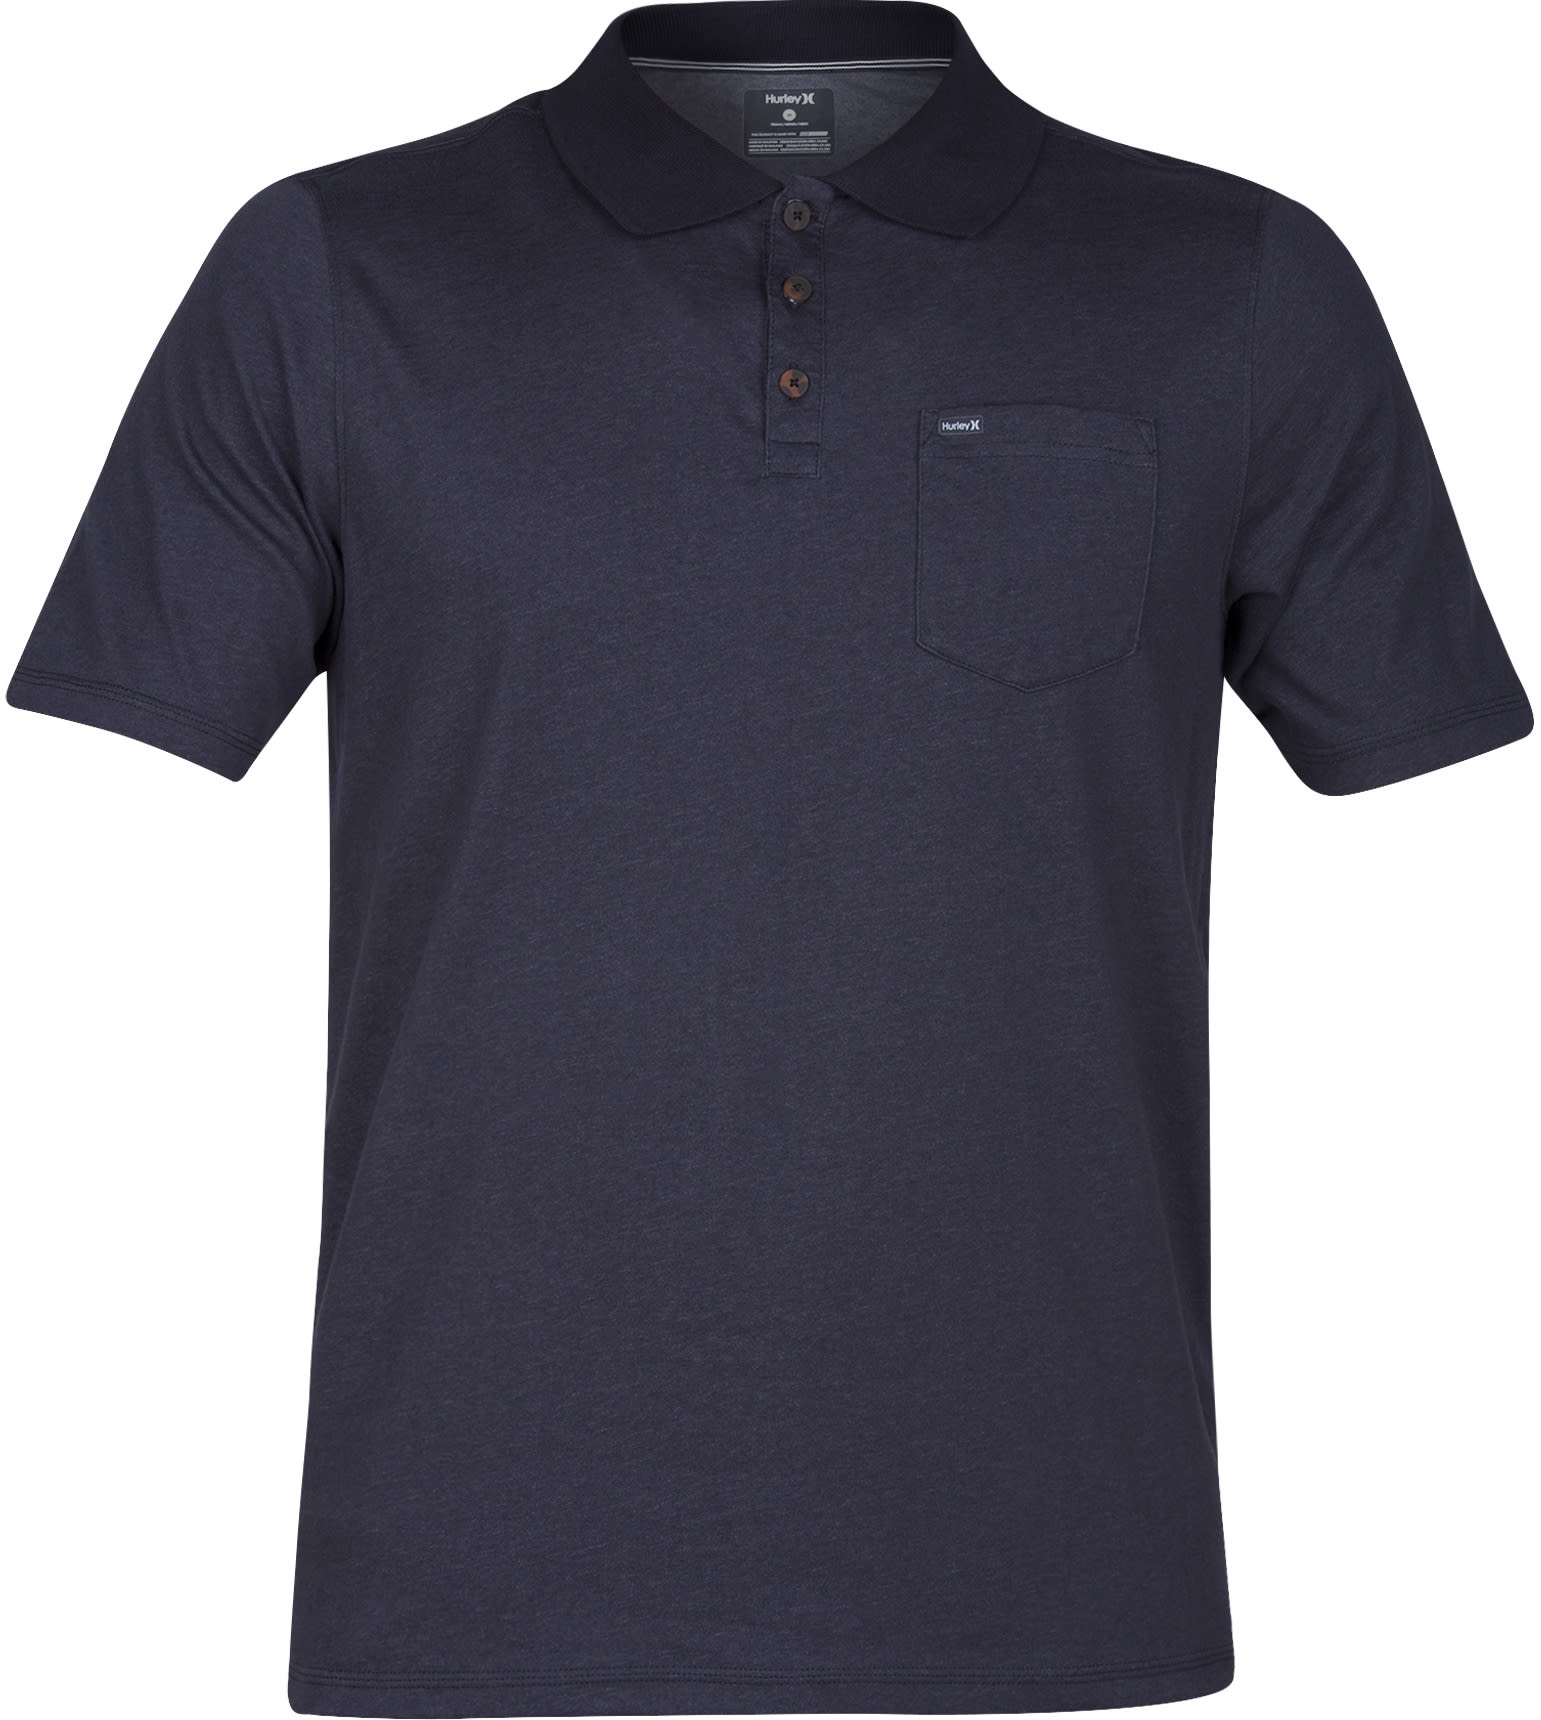 On sale hurley dri fit lagos 3 0 polo up to 40 off for Dri fit shirts on sale